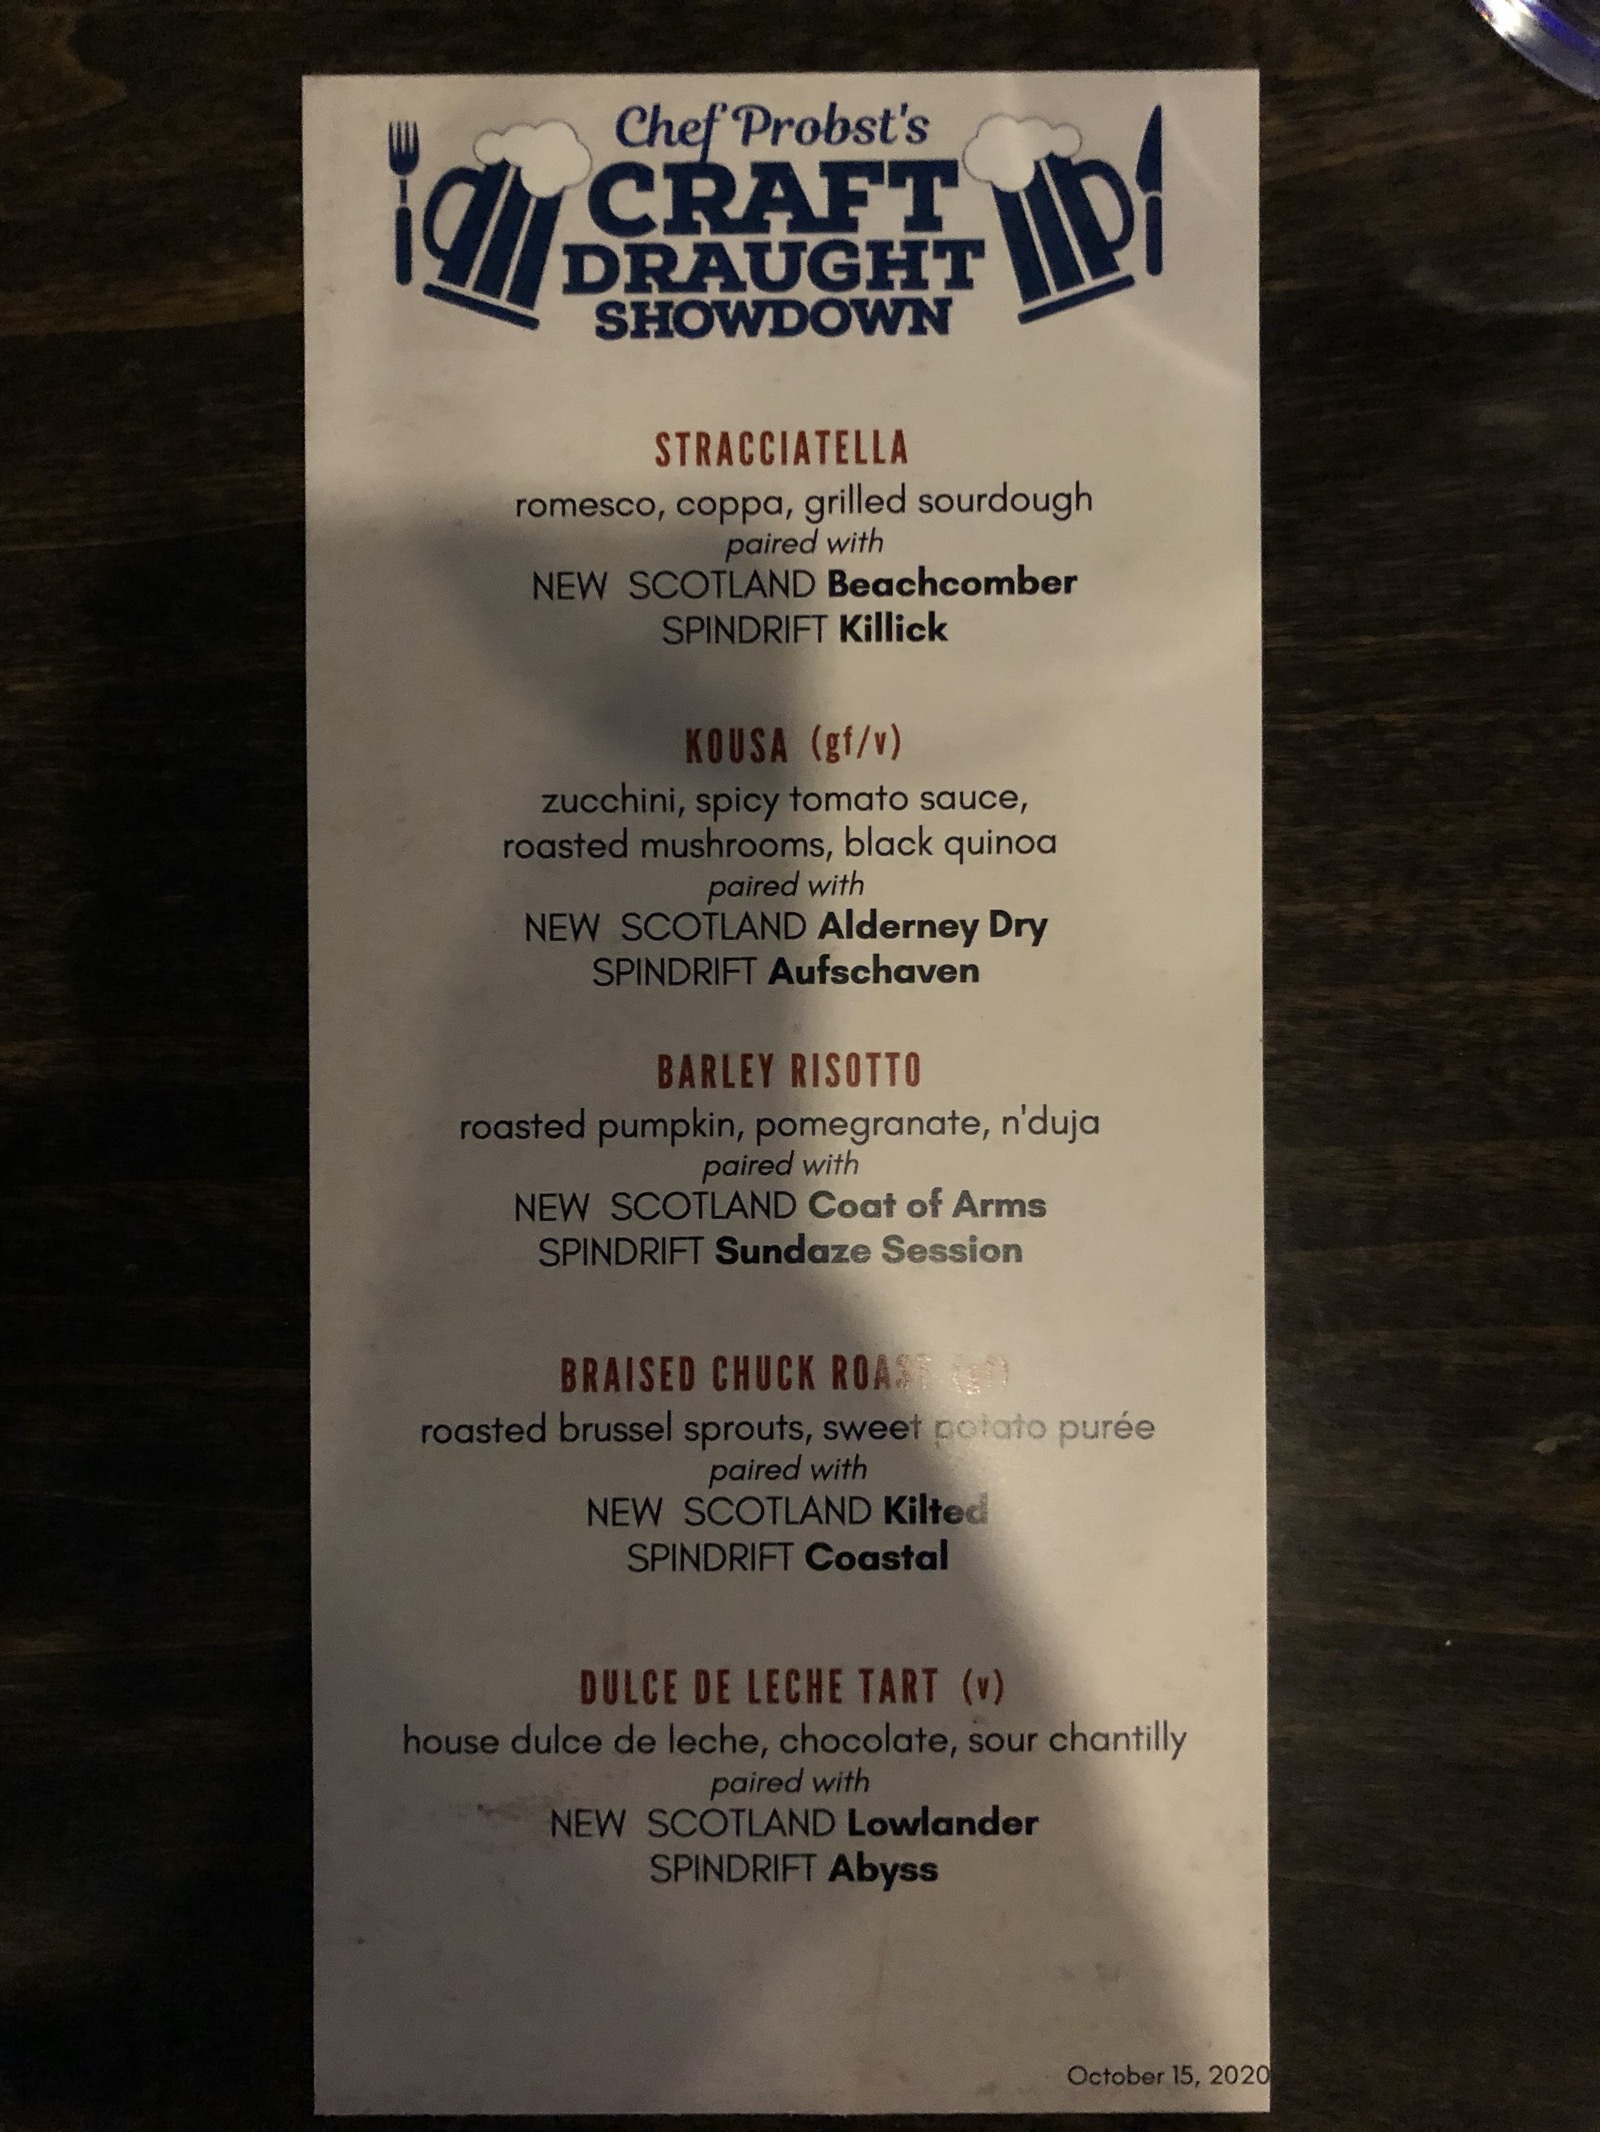 Menu for the 5 course meal including the beer pairings